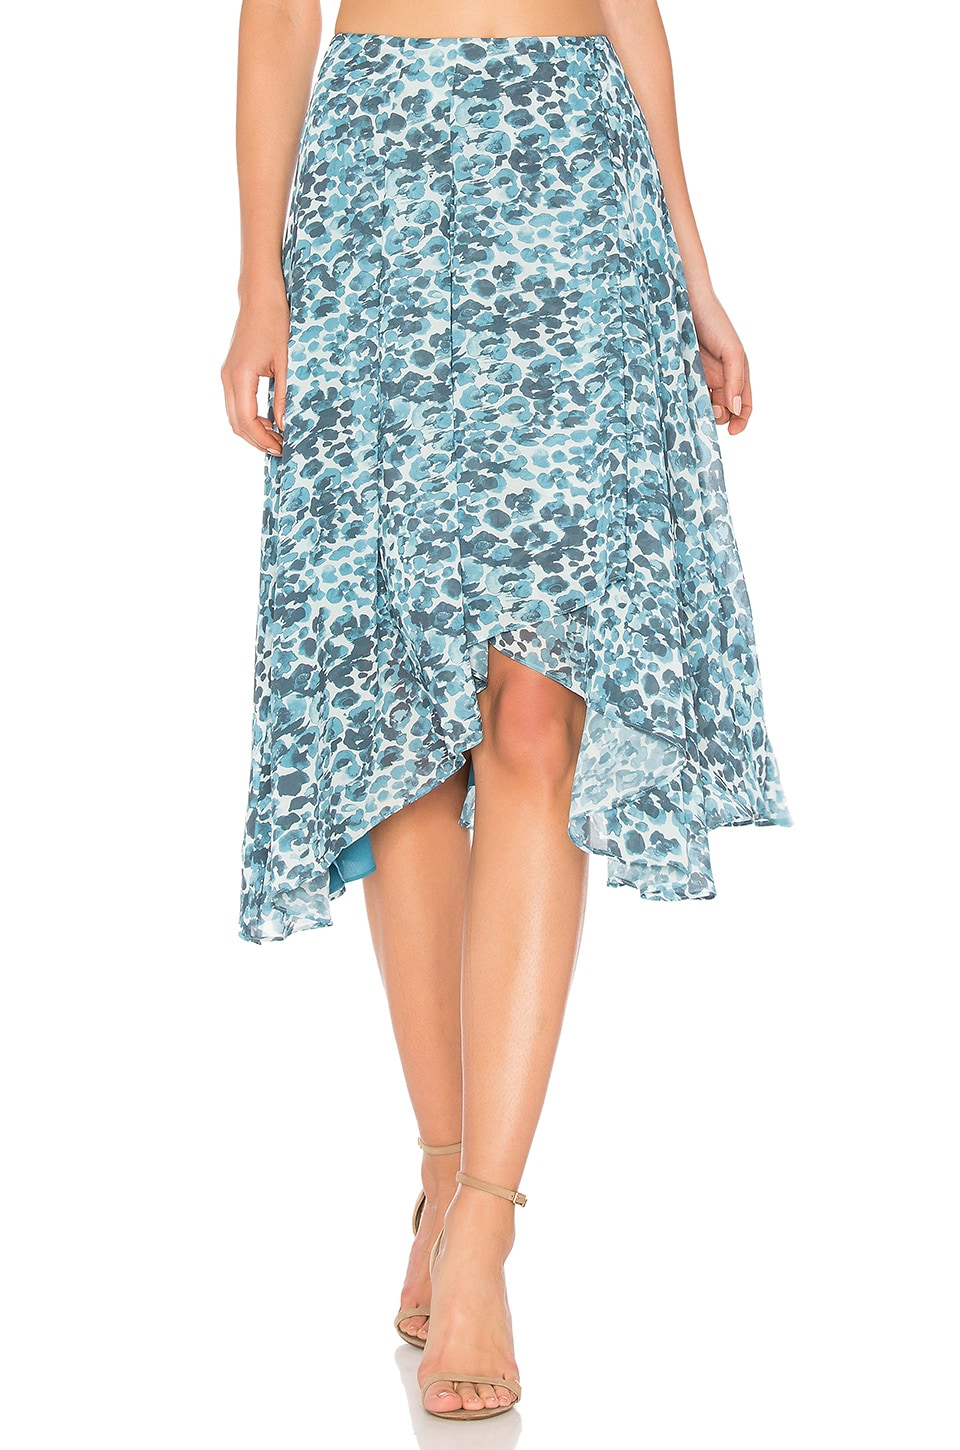 x REVOLVE Cici Skirt by House Of Harlow 1960